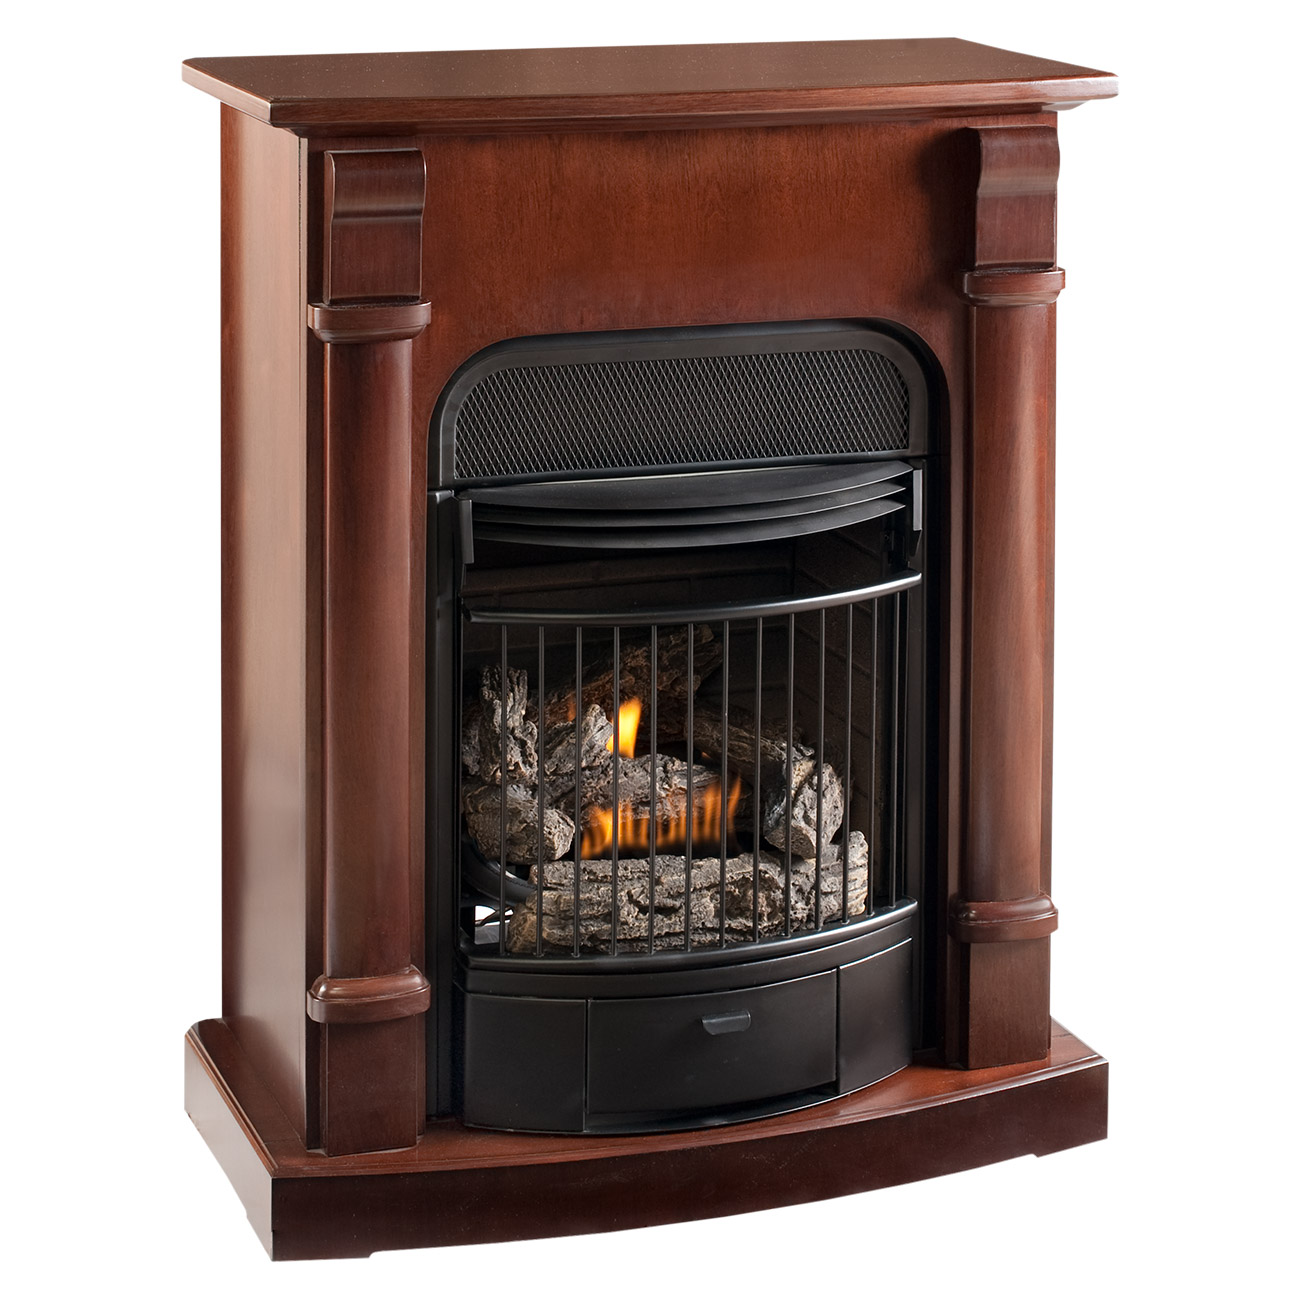 Ventless Fireplace Model Edp200t2 Ja